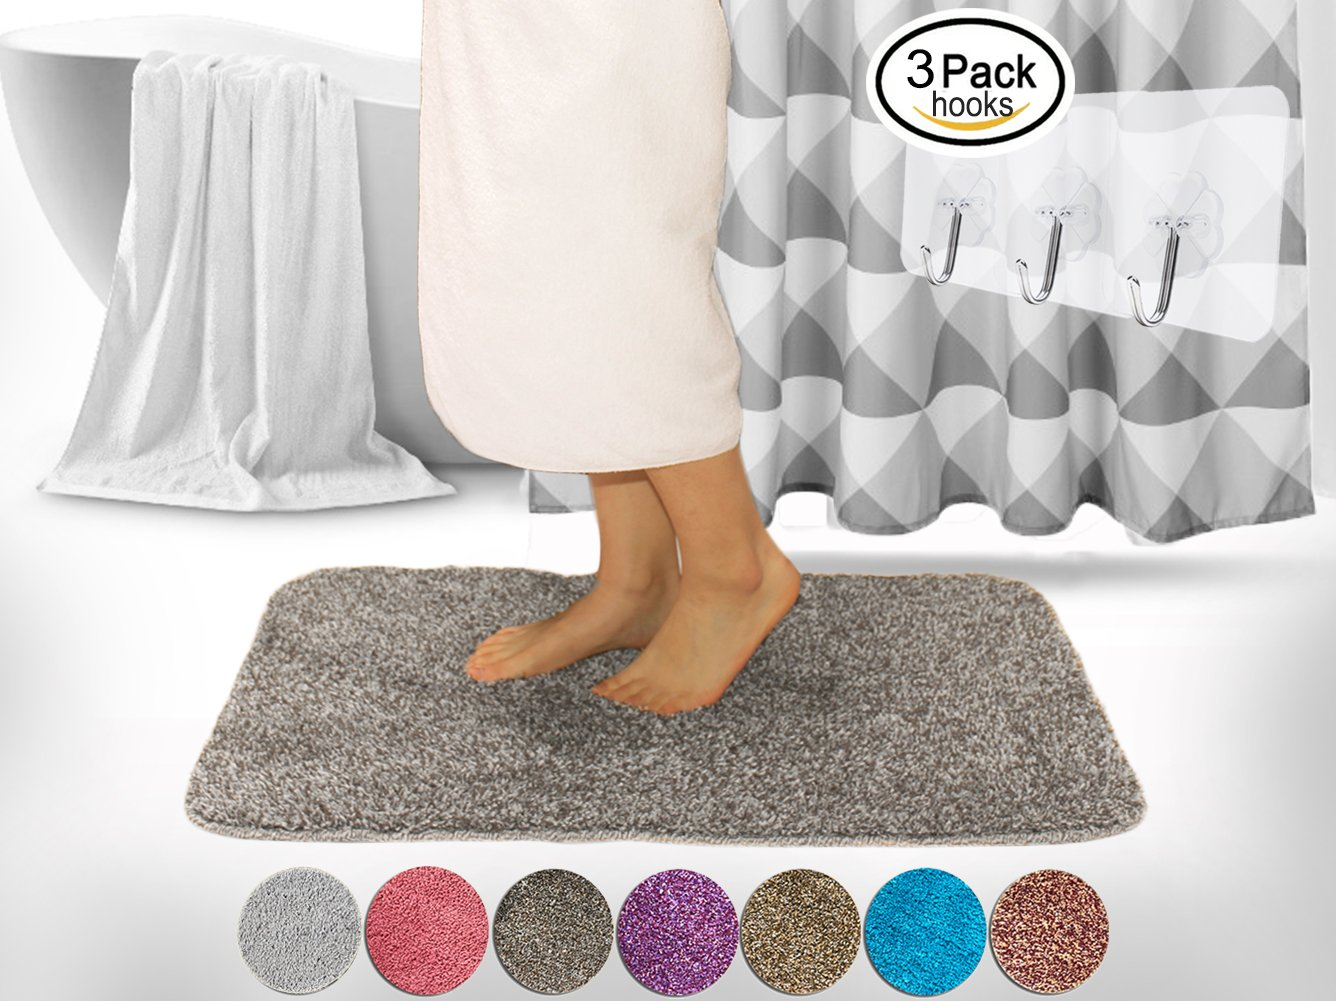 Yimobra Luxurious Bath Mat Absorbent Large XL 315 X 198 Inch Soft Non Slip Gray With